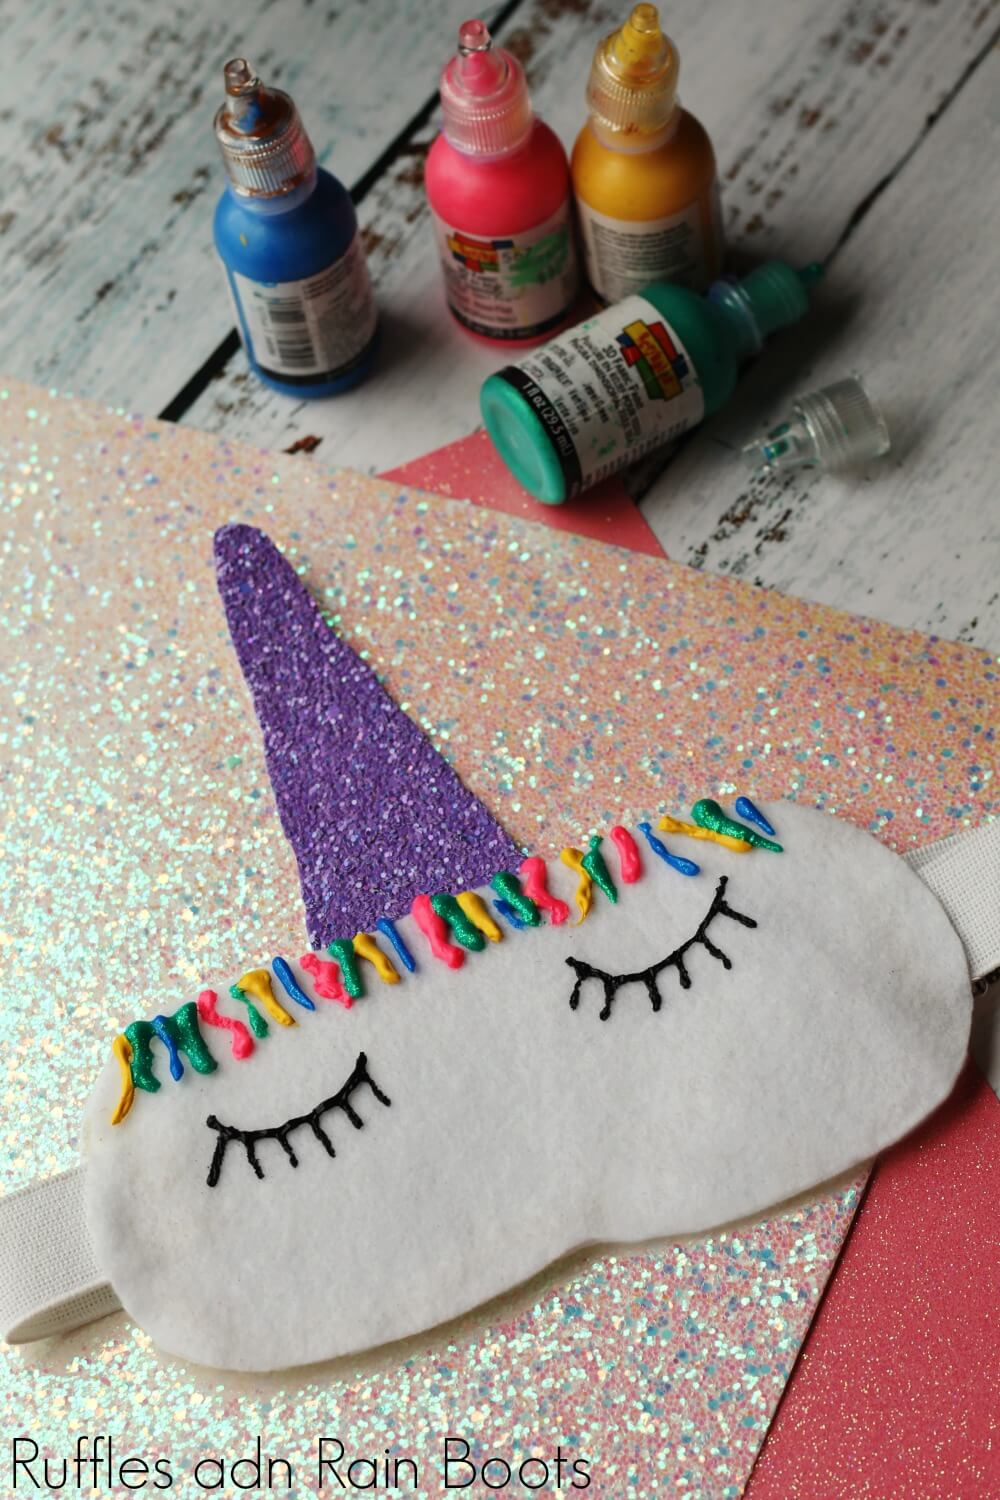 finished project of unicorn sleep mask on glitter paper with paint in background